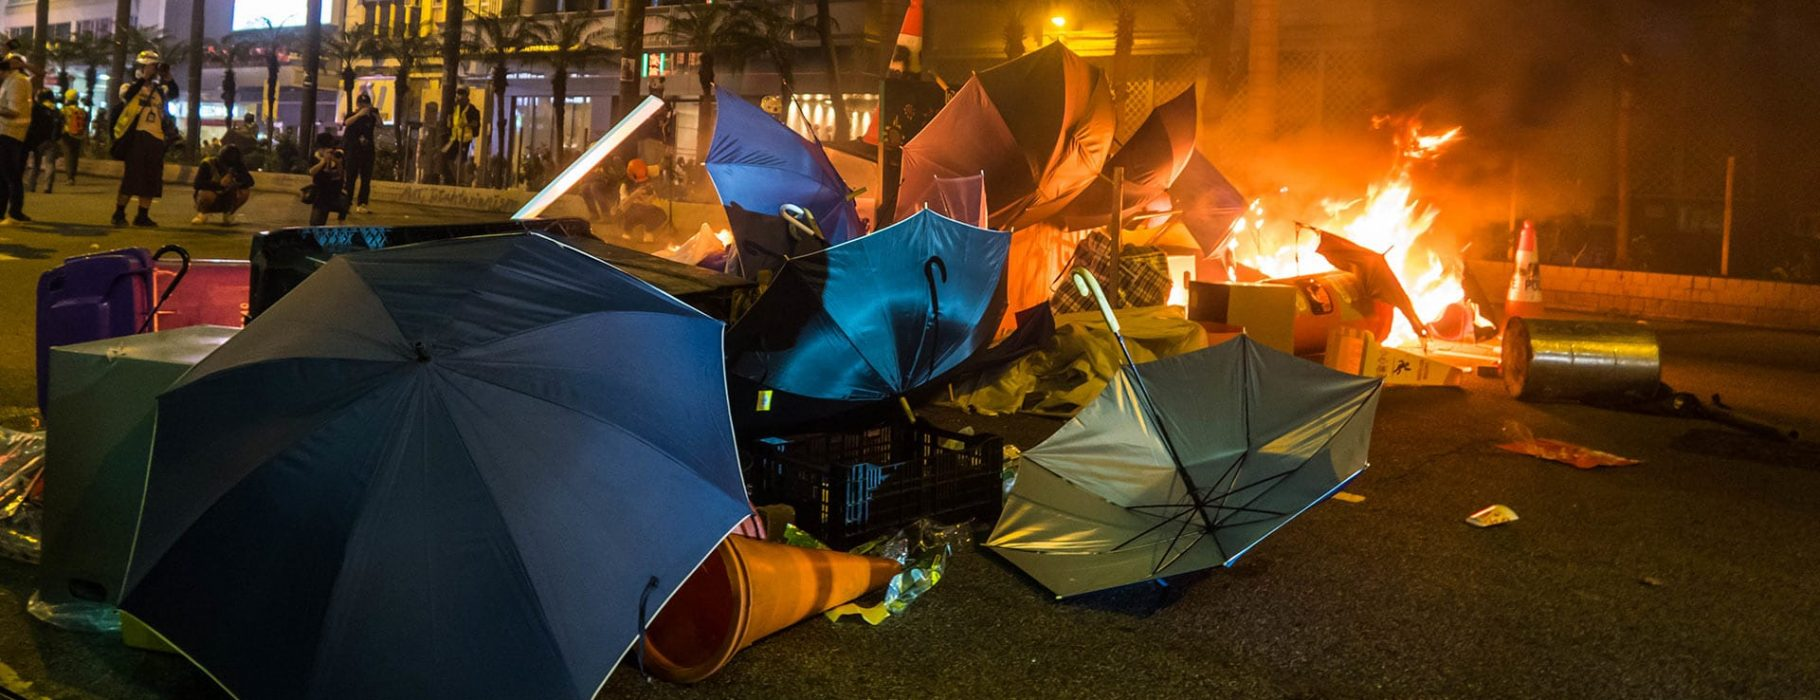 A fire begins at a protest in Hong Kong